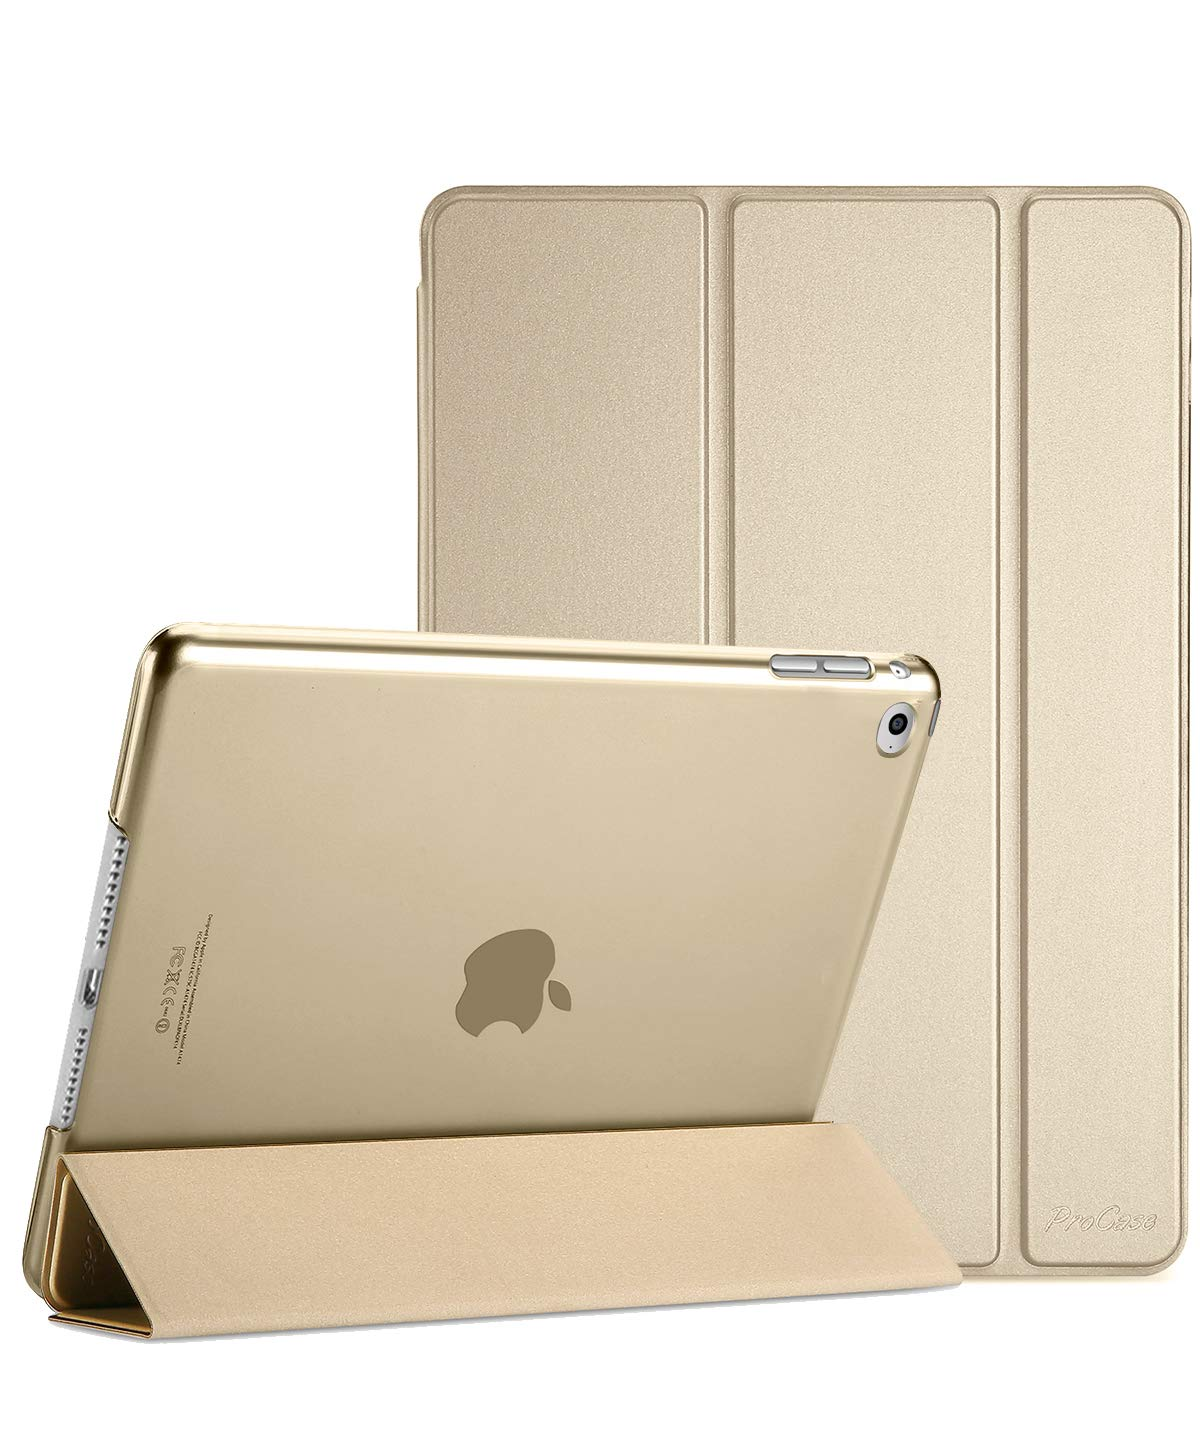 Procase iPad Mini 4 Case - Ultra Slim Lightweight Stand Case with Translucent Frosted Back Smart Cover for 2015 Apple iPad Mini 4 (4th Generation iPad Mini, mini4) –Gold